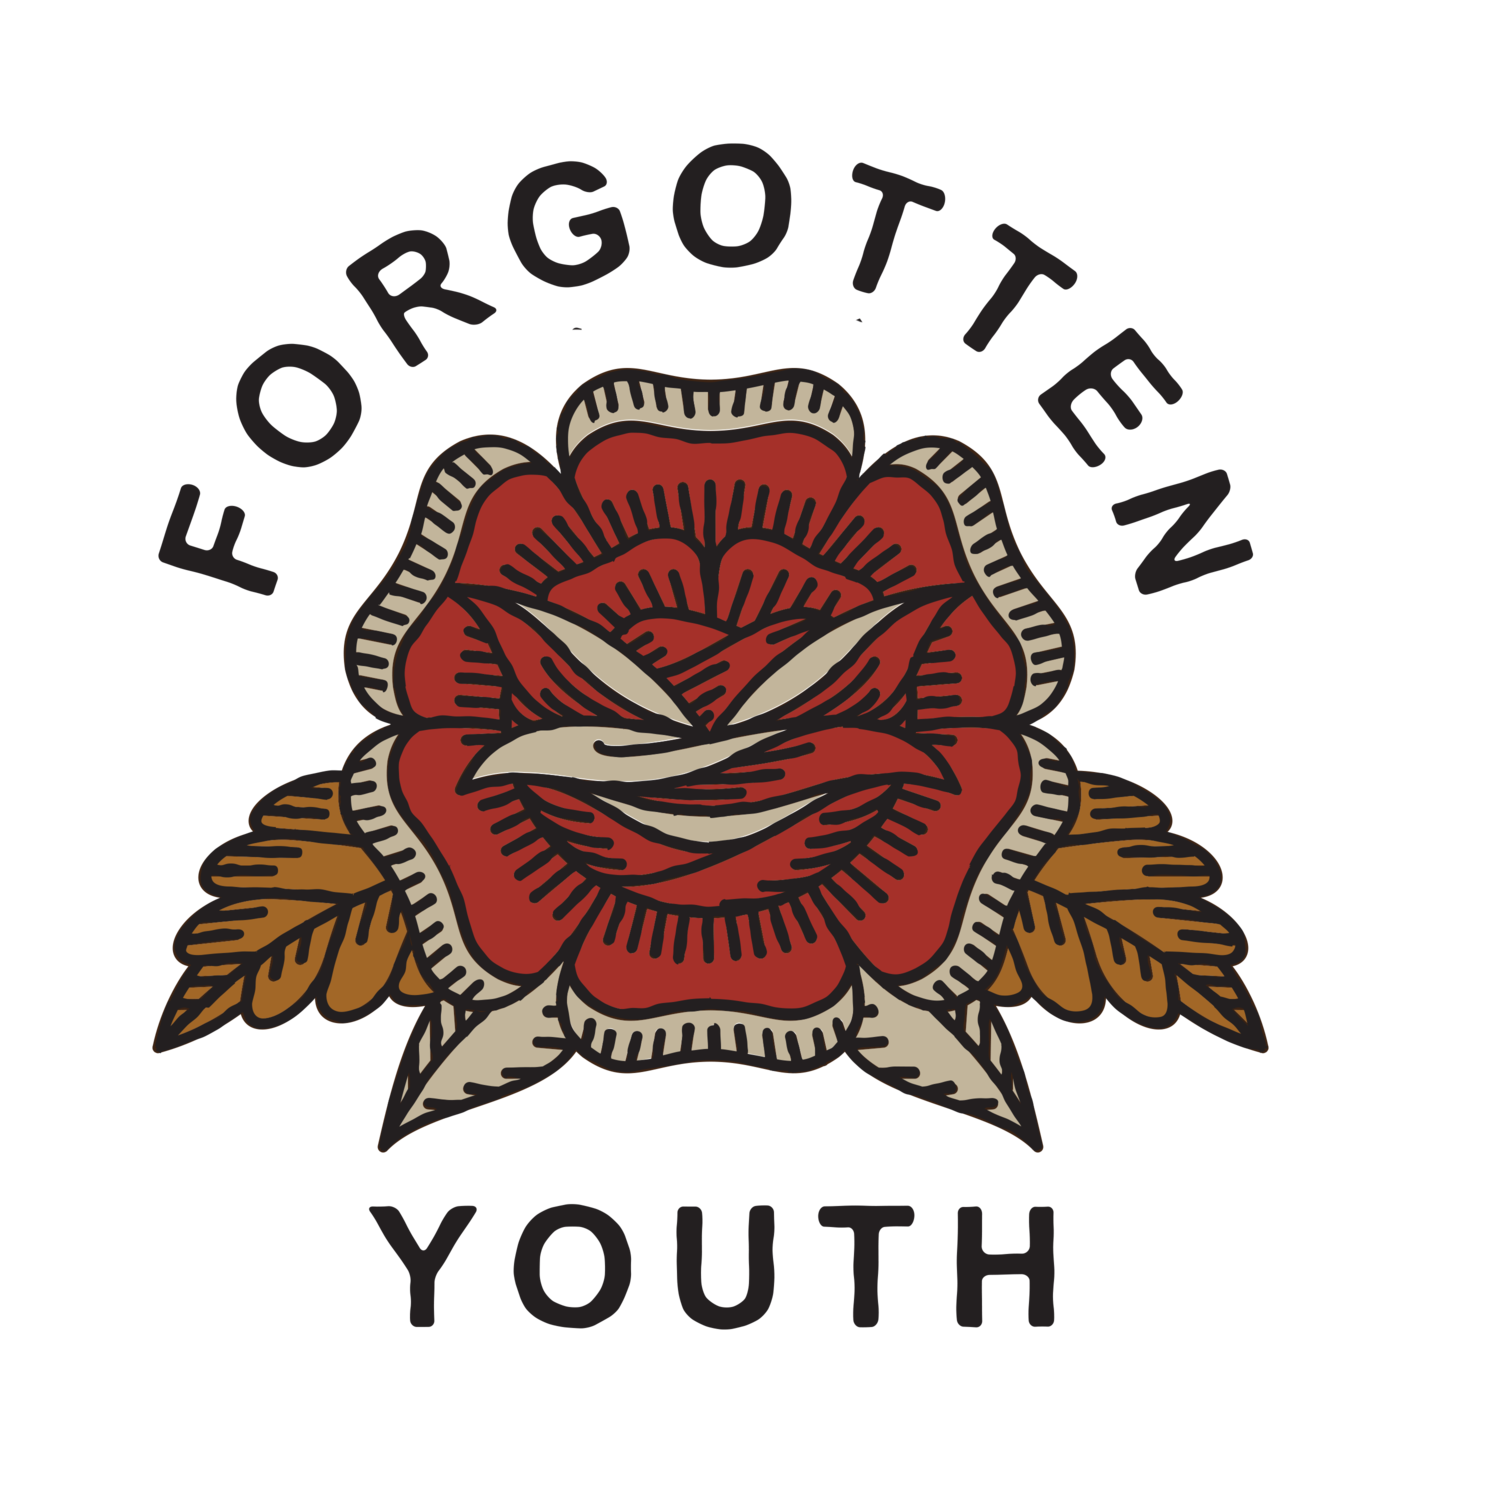 Forgotten Youth | Lost in Thought